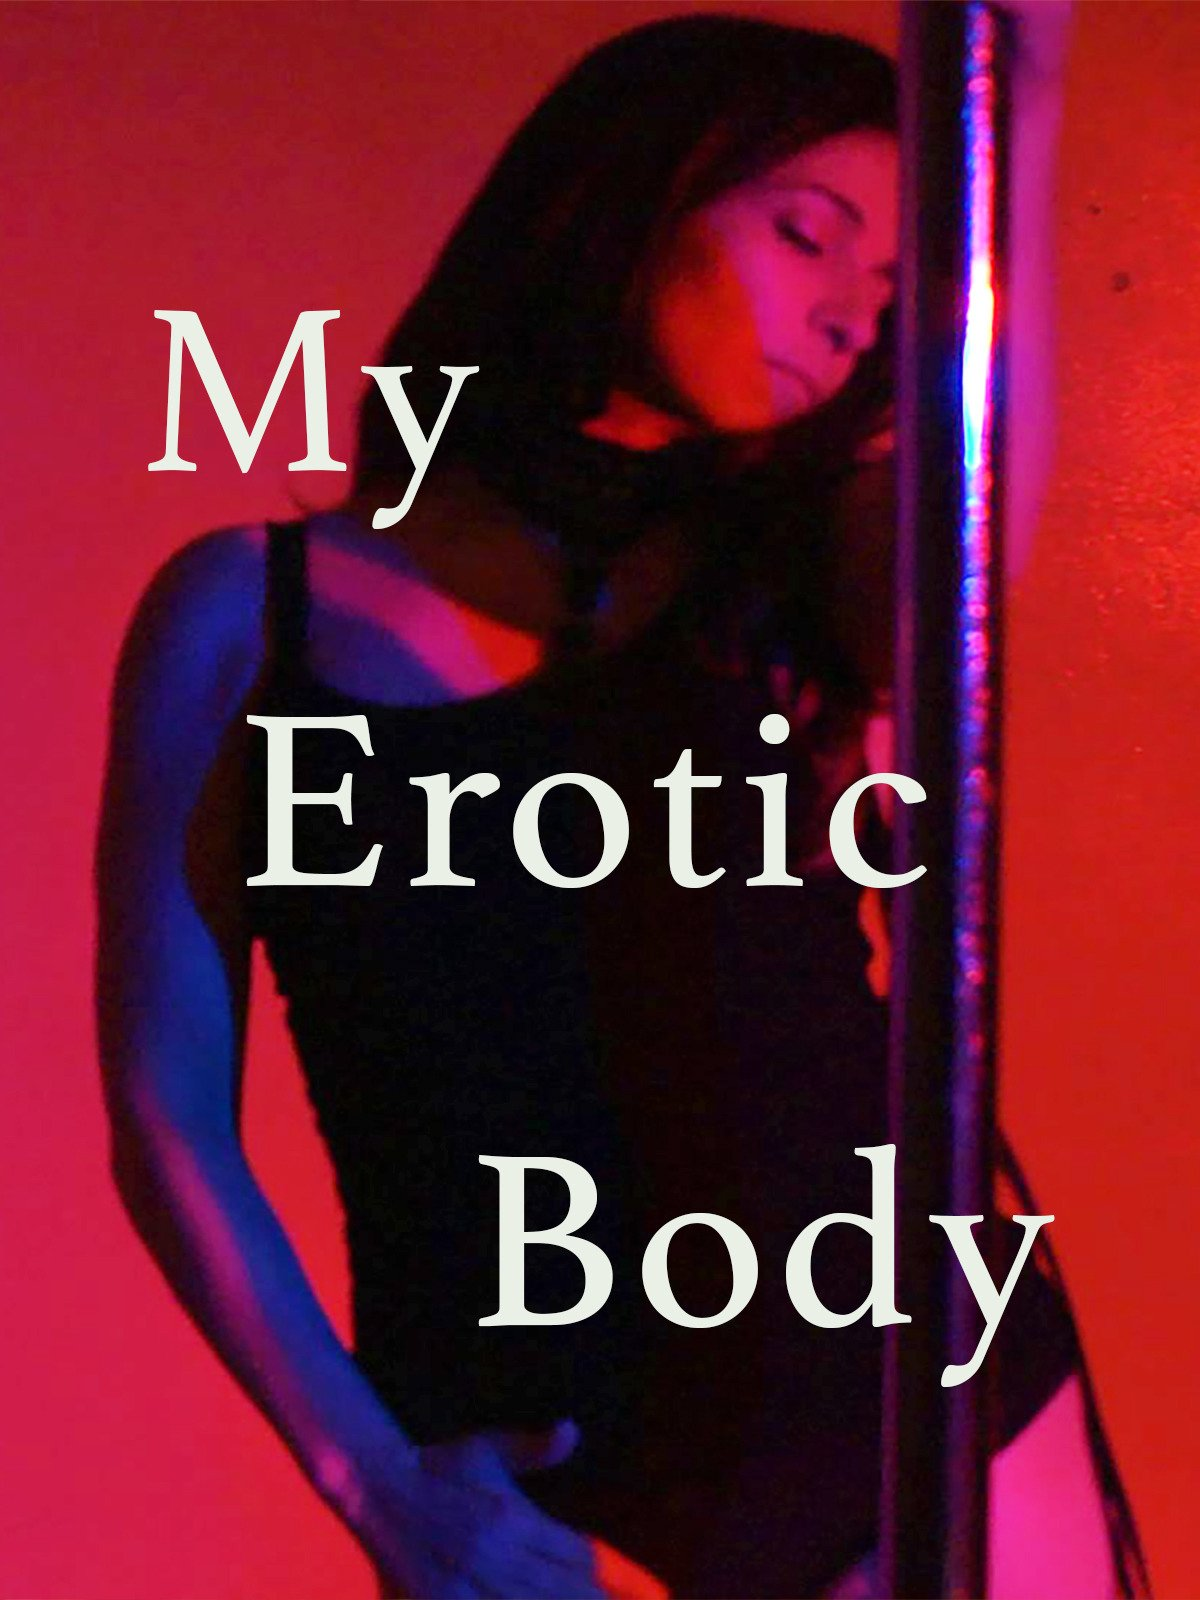 My Erotic Body